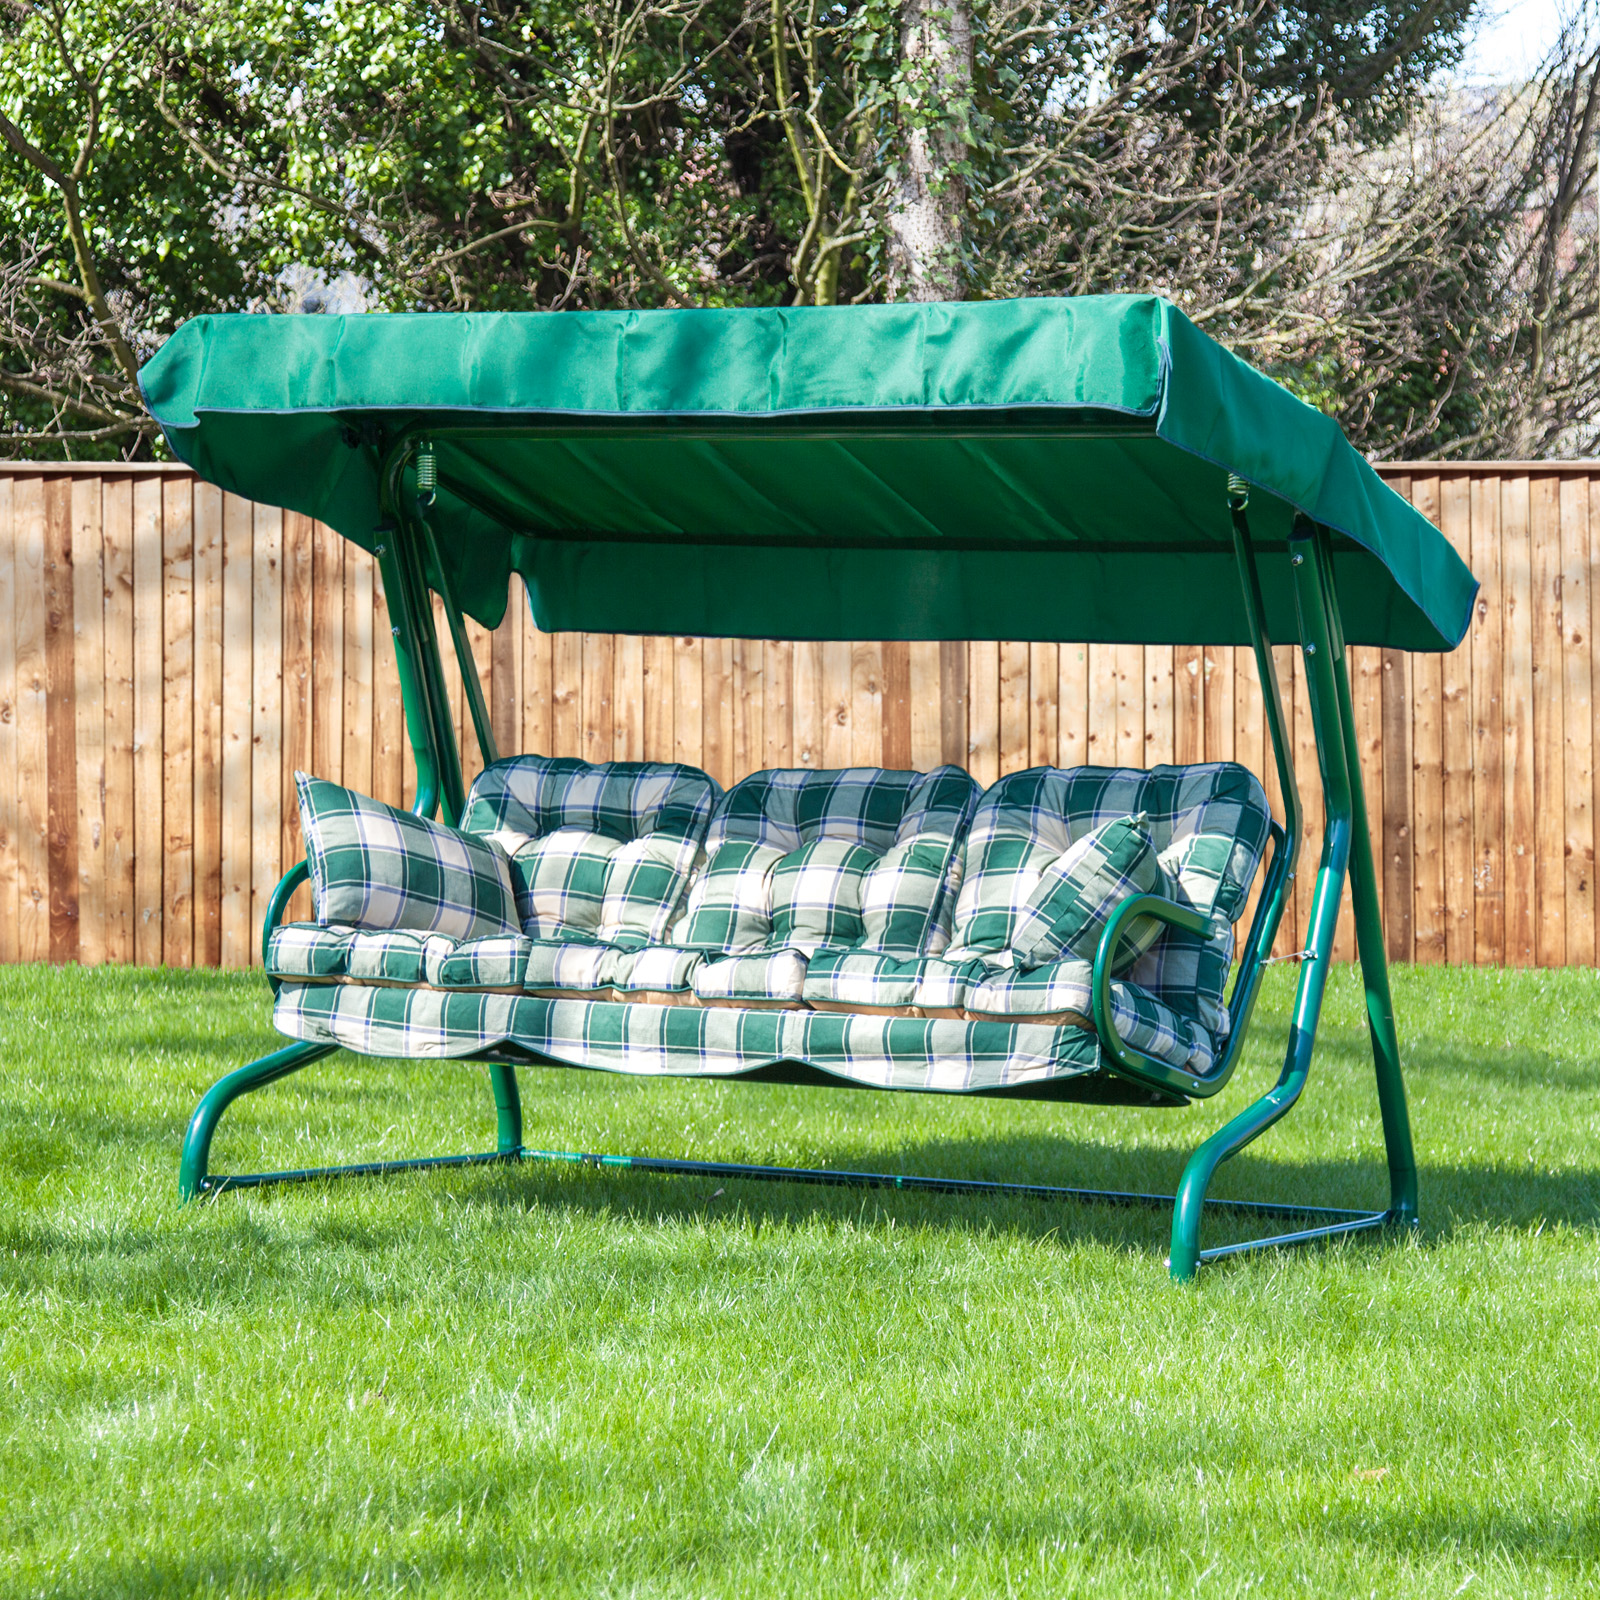 Have outdoor adult swing replacement seats